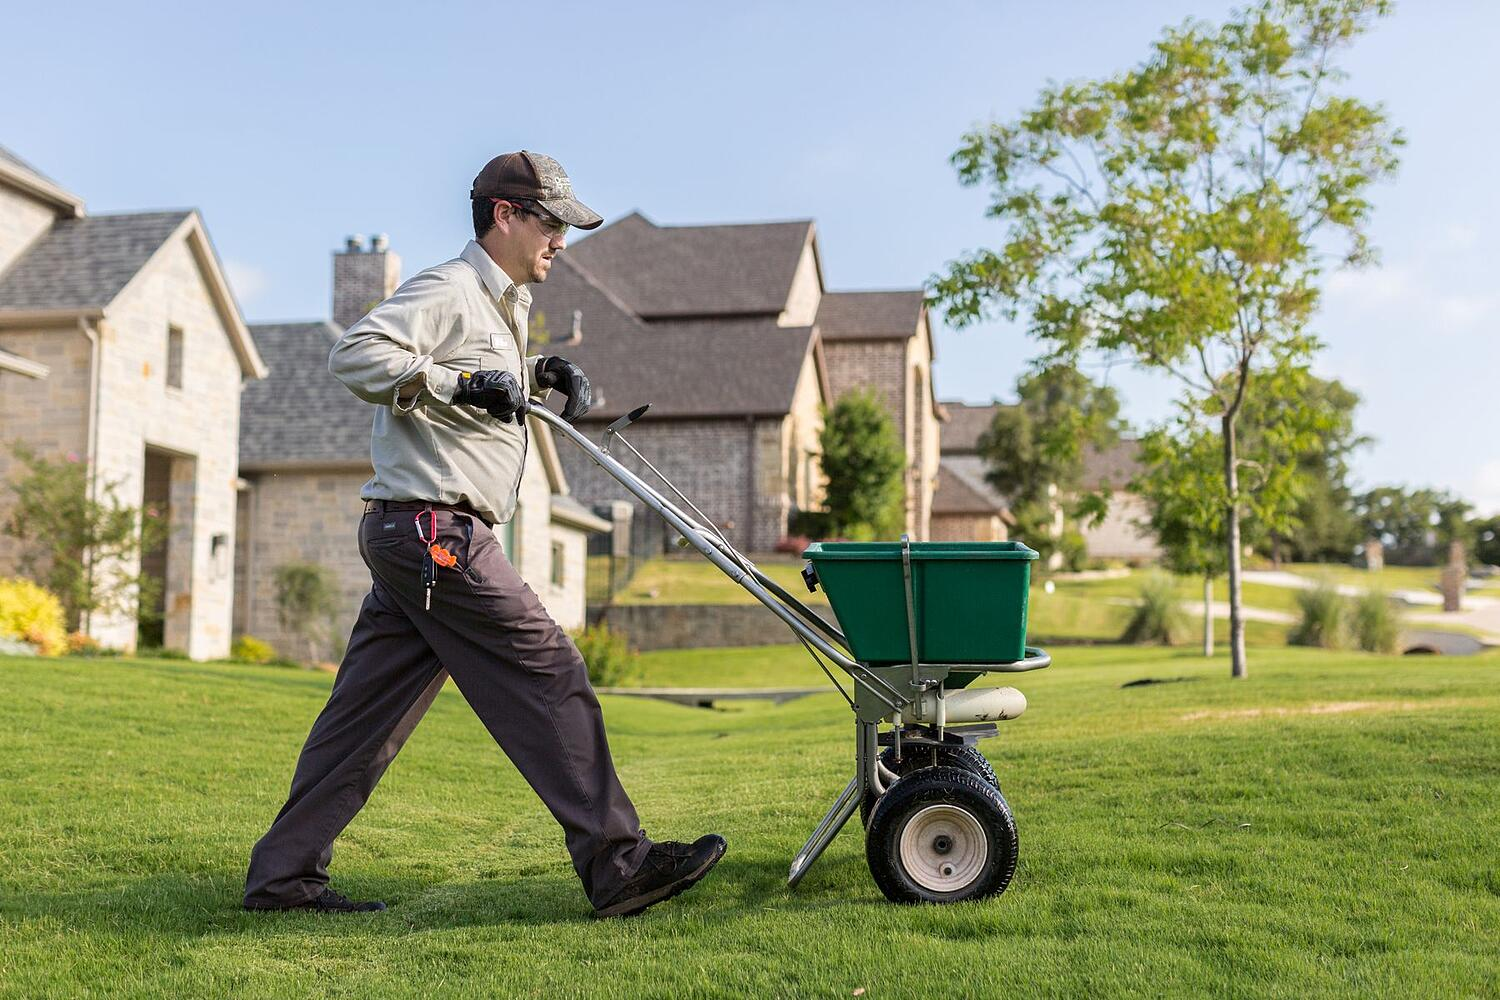 texas grass being fertilized by lawn care technician